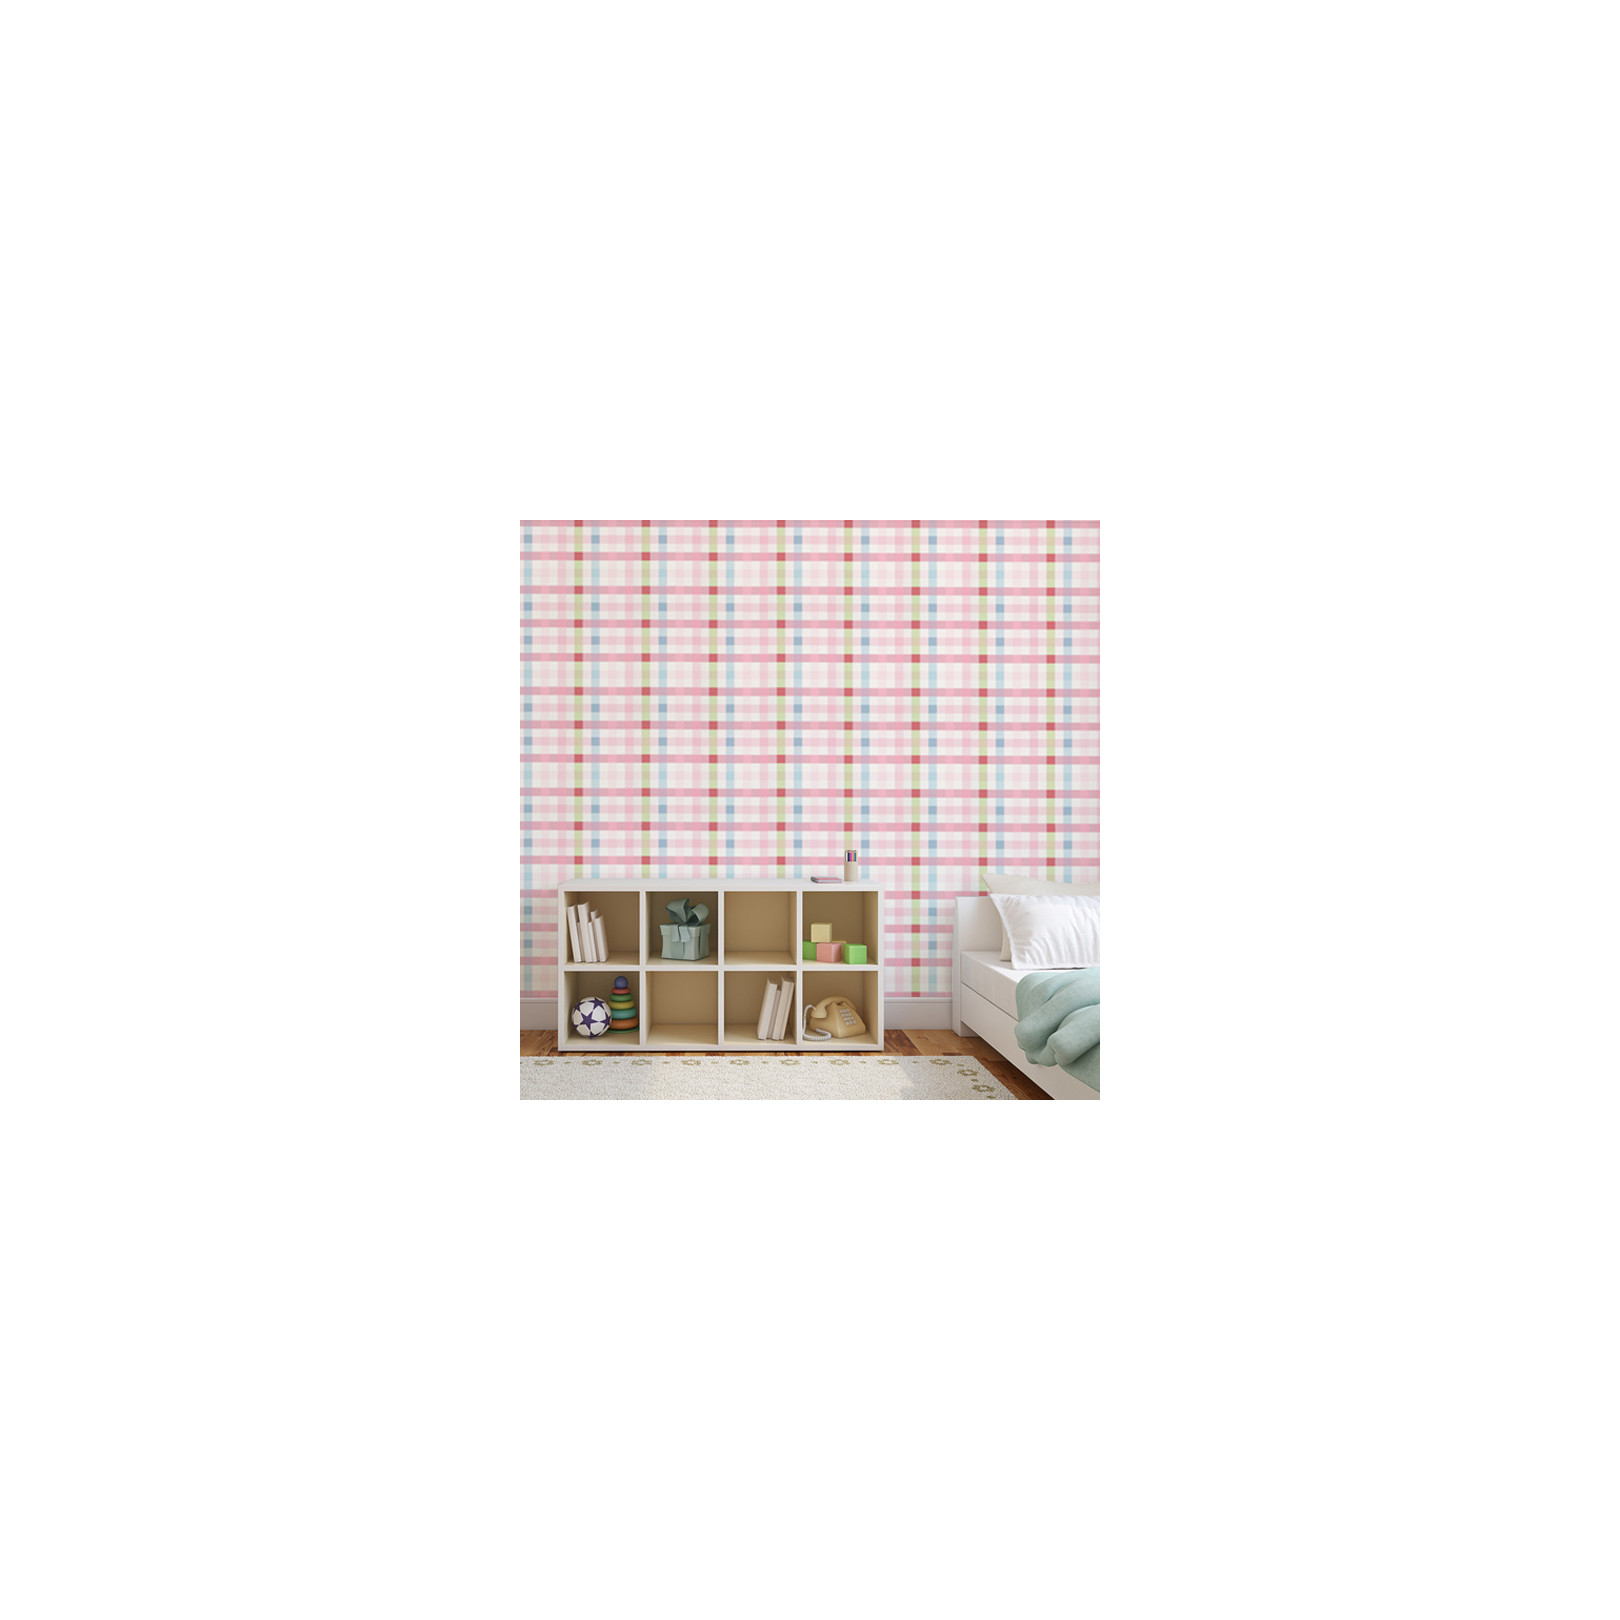 papier peint motif tartan multicolore chambre fille. Black Bedroom Furniture Sets. Home Design Ideas